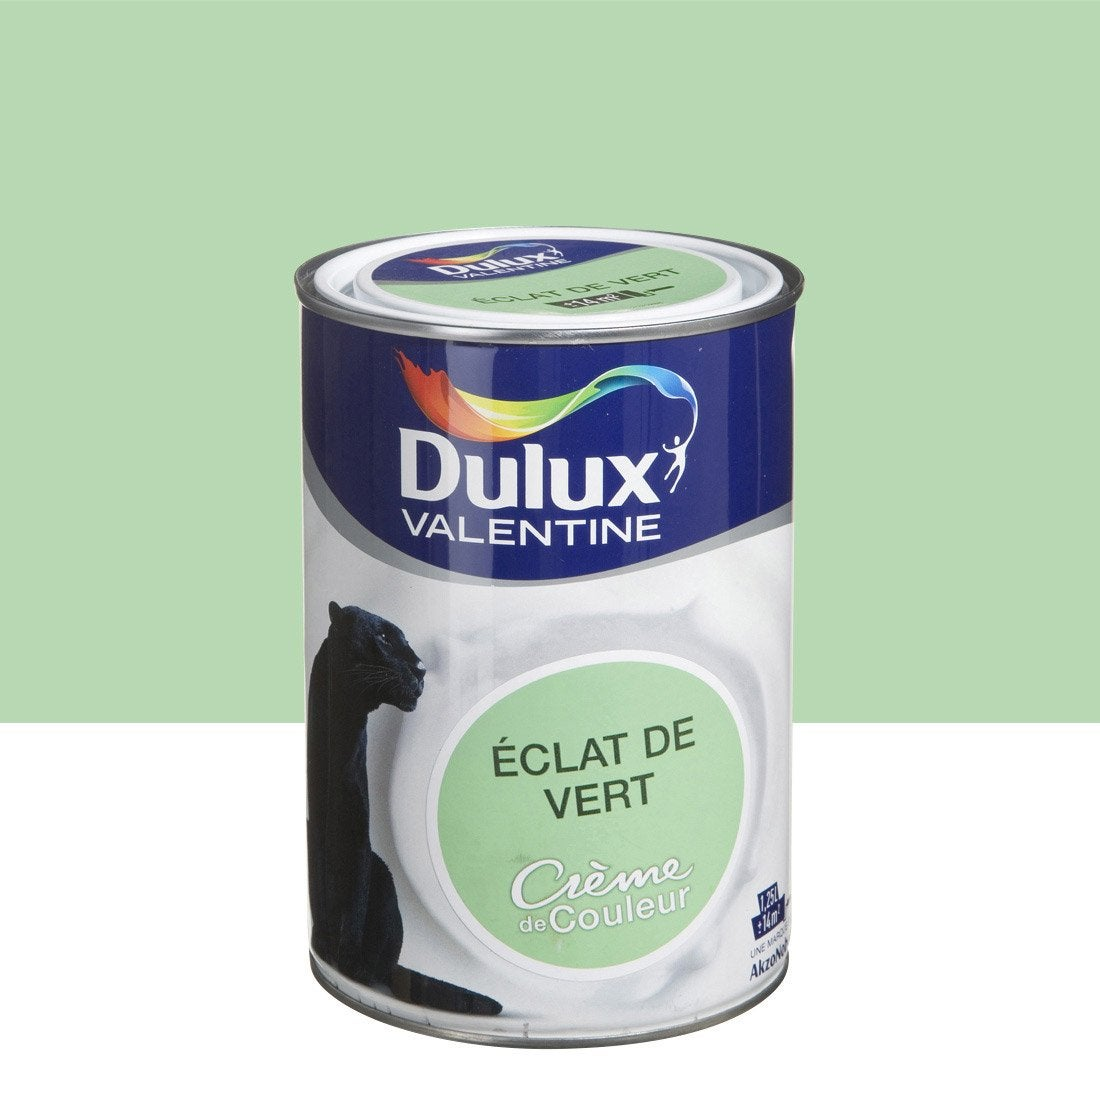 peinture eclat de vert dulux valentine cr me de couleur 1. Black Bedroom Furniture Sets. Home Design Ideas